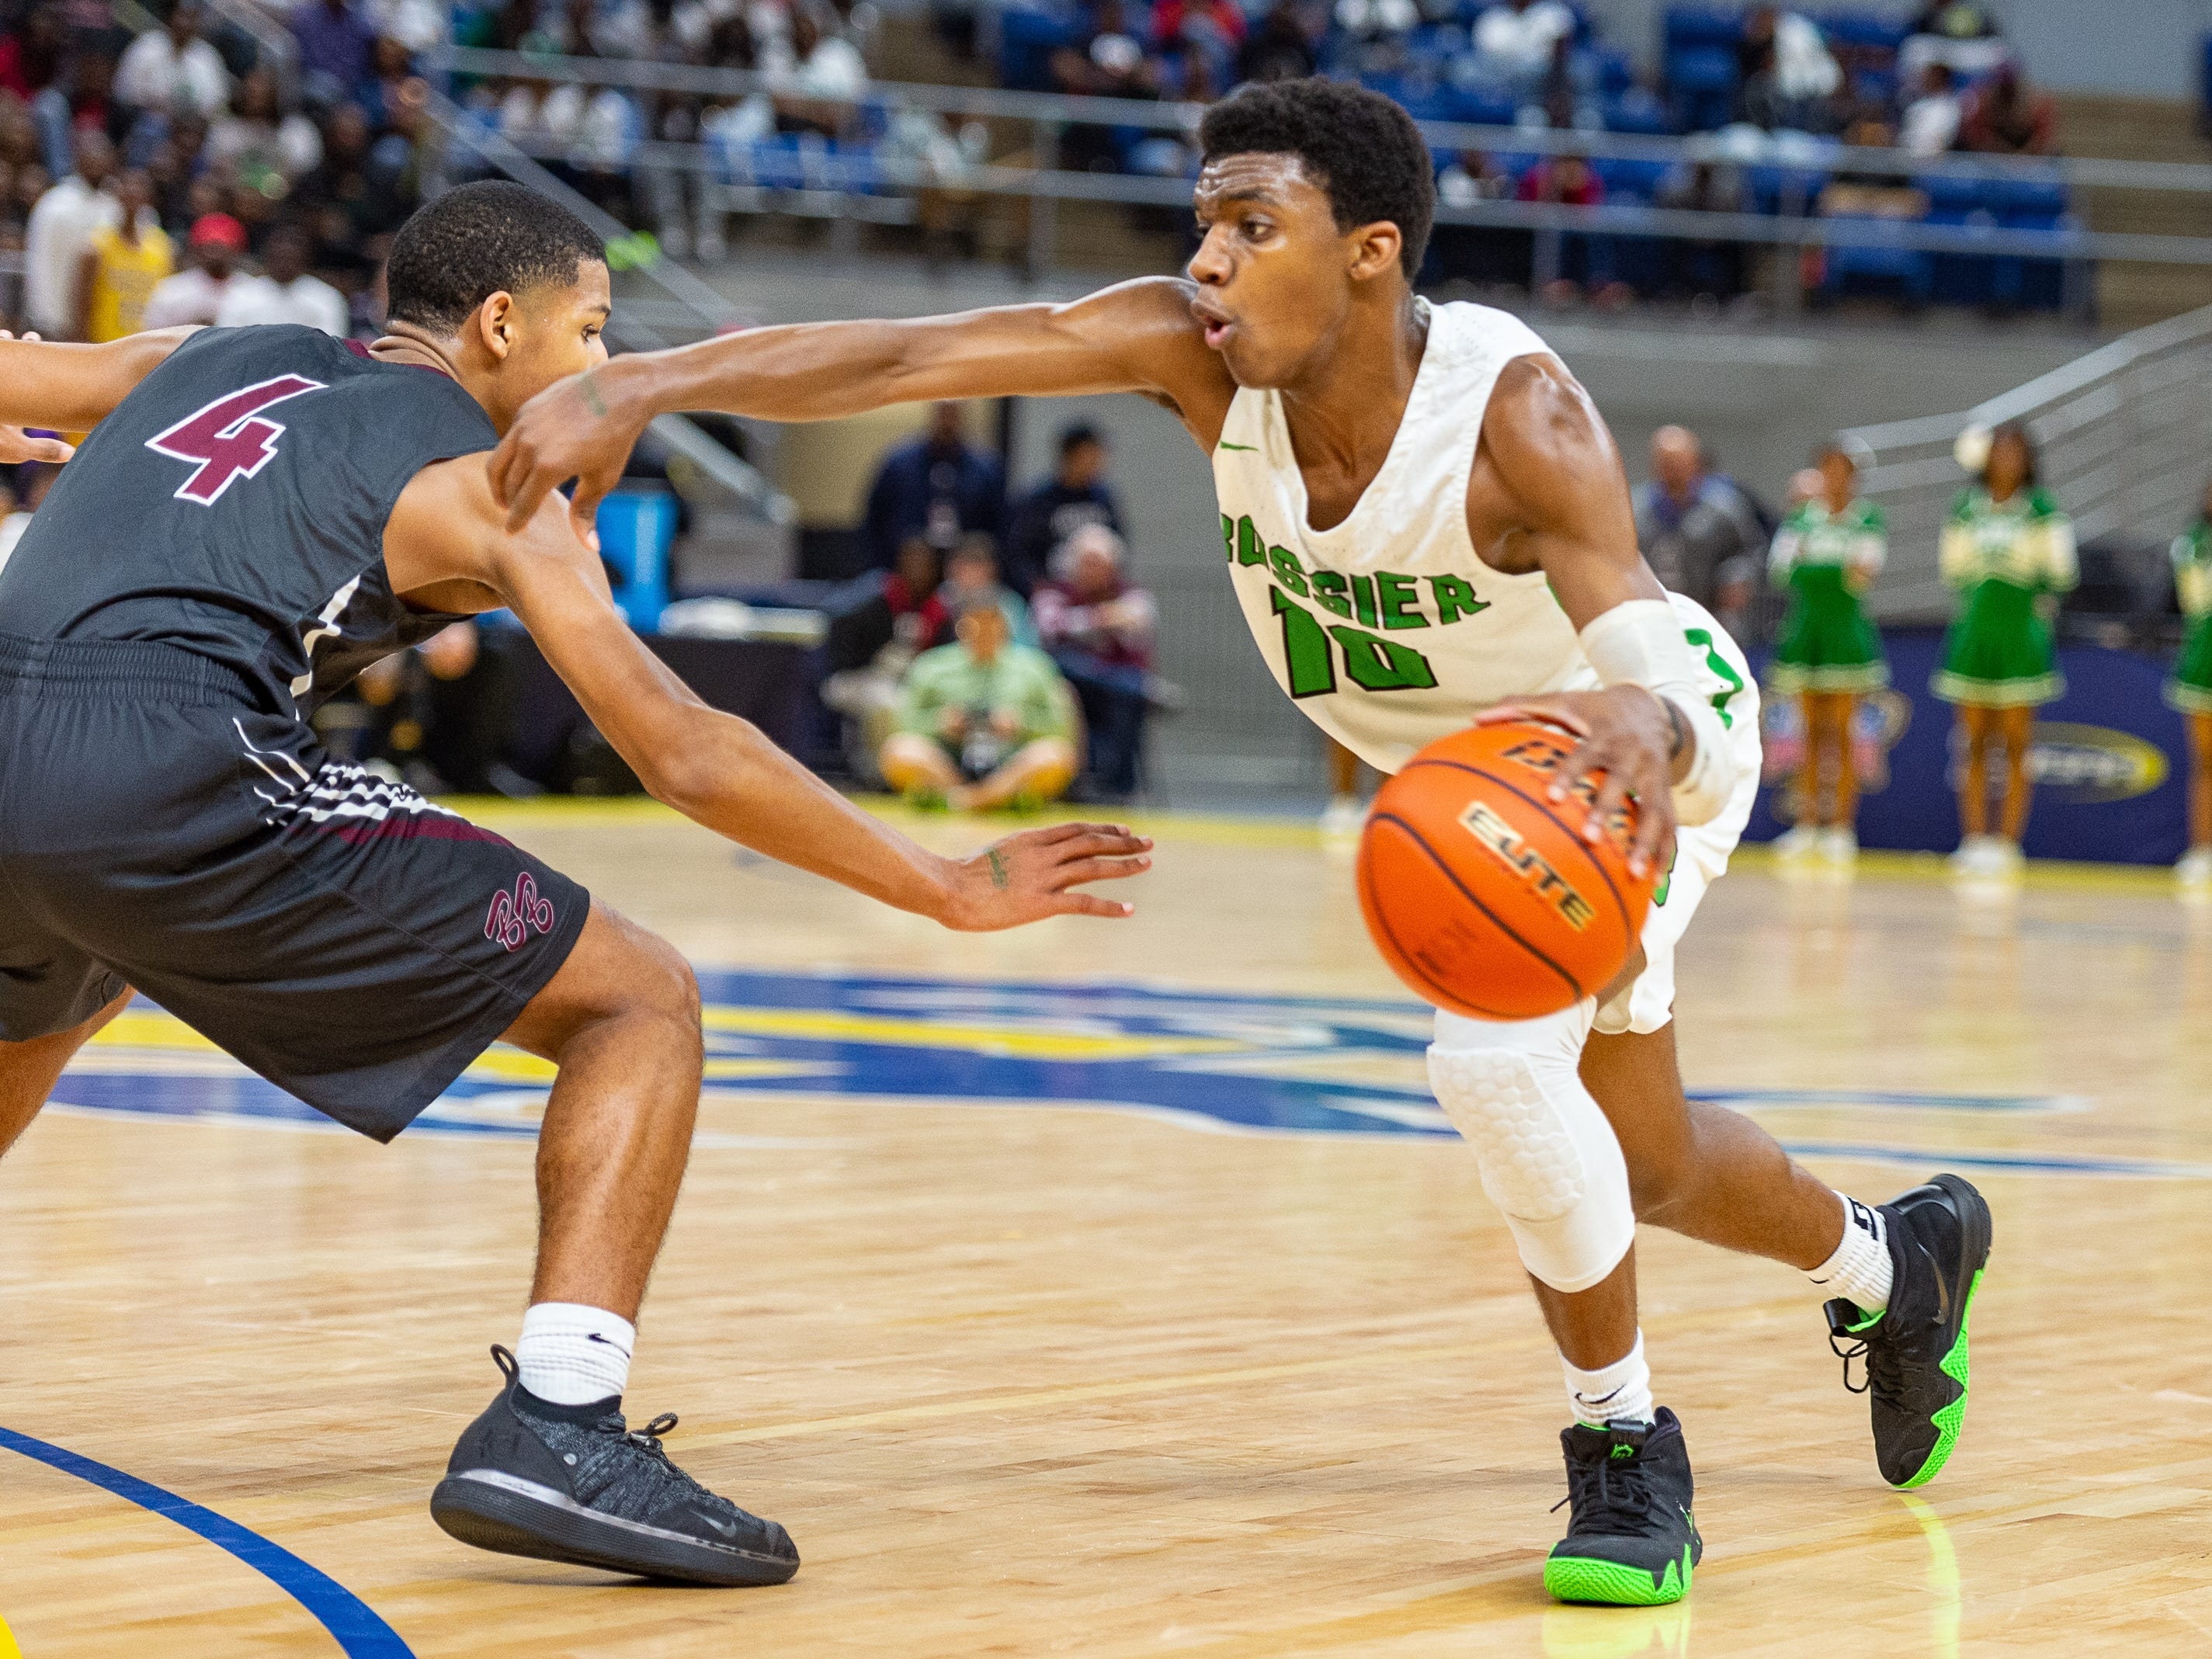 Kaalas Roots drives to the basket as Breaux Bridge takes on Bossier in the Allstate Sugar Bowl/LHSAA Boys' Marsh Madness State Championship. Friday, March 8, 2019.